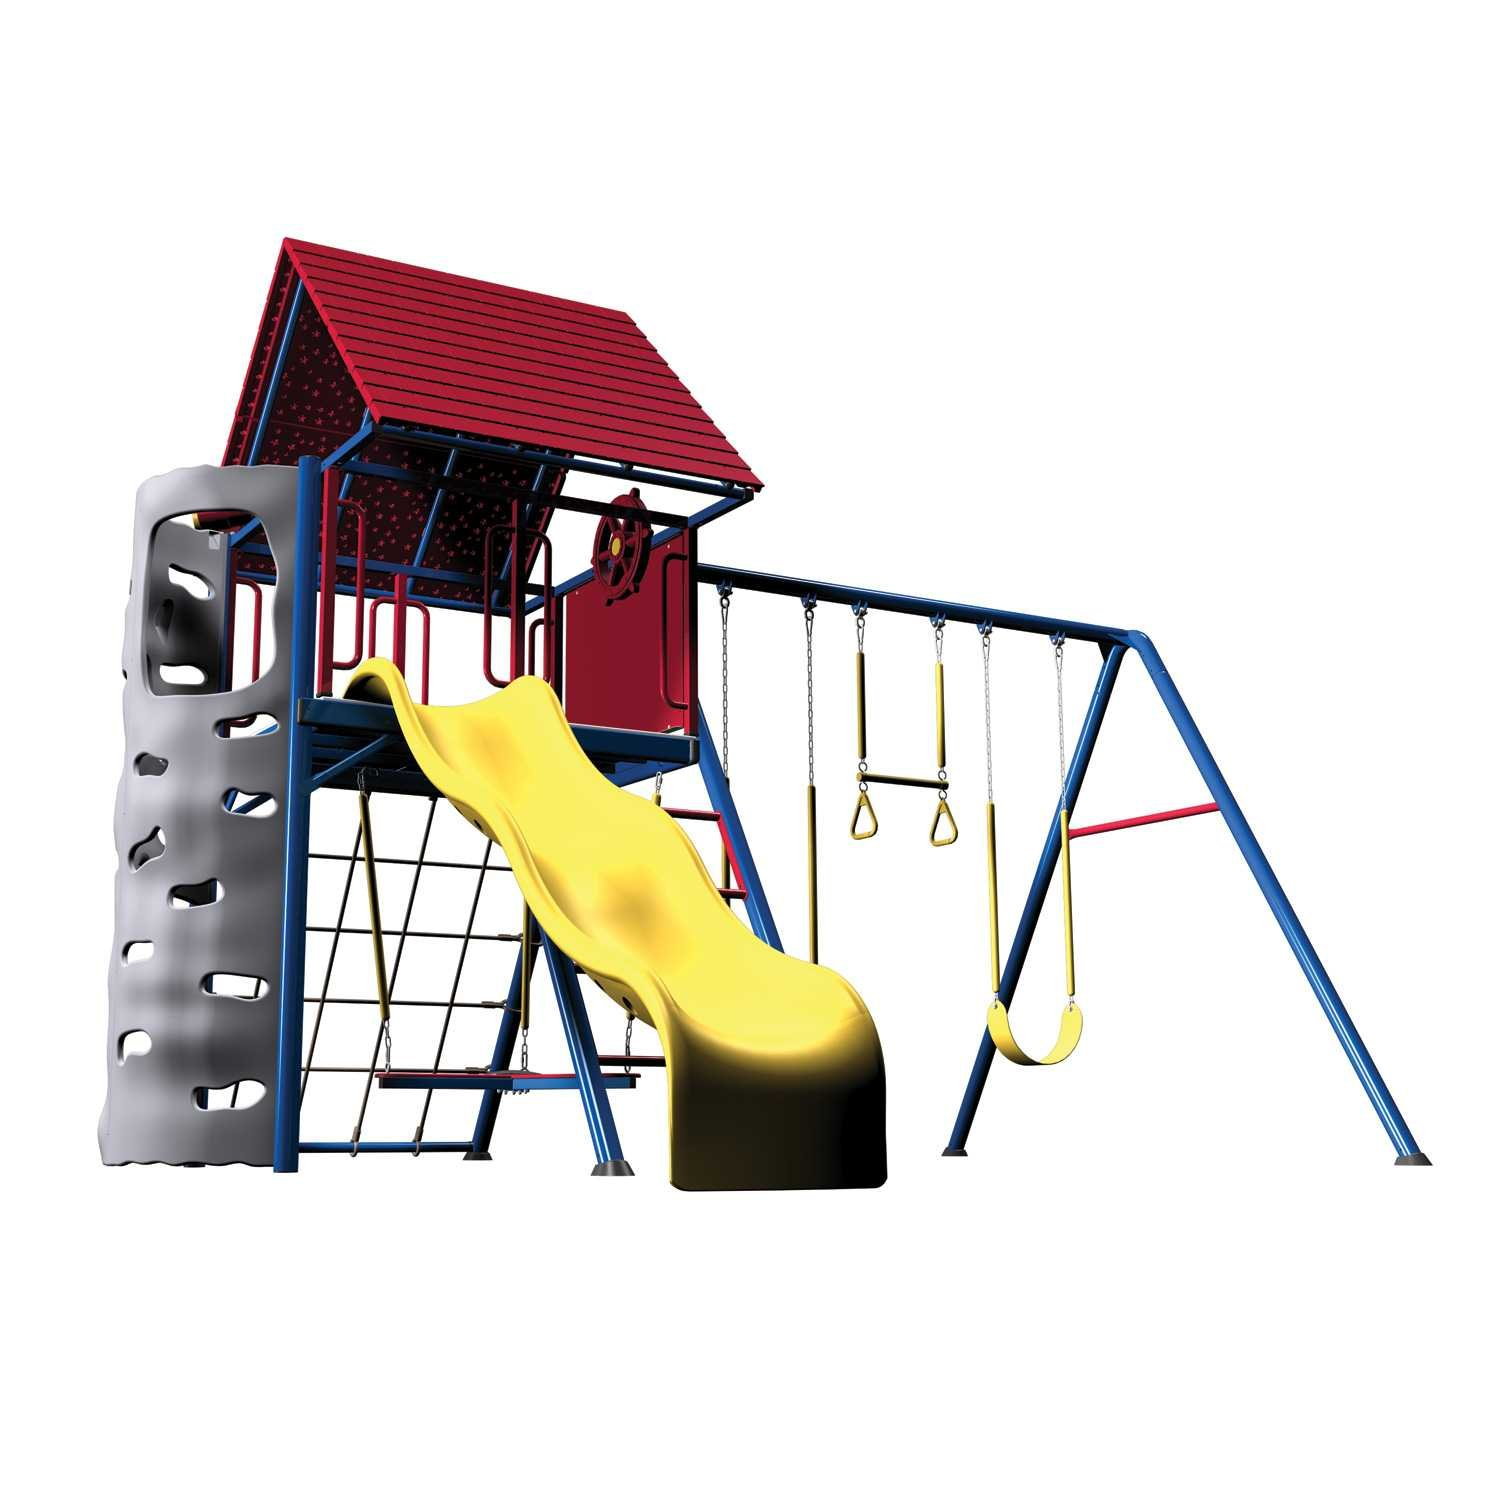 wood gorilla lifetime costco fisher funfull set with price fiasco playhouse children swing playsets activities kmart wooden exterior playset sets outdoor